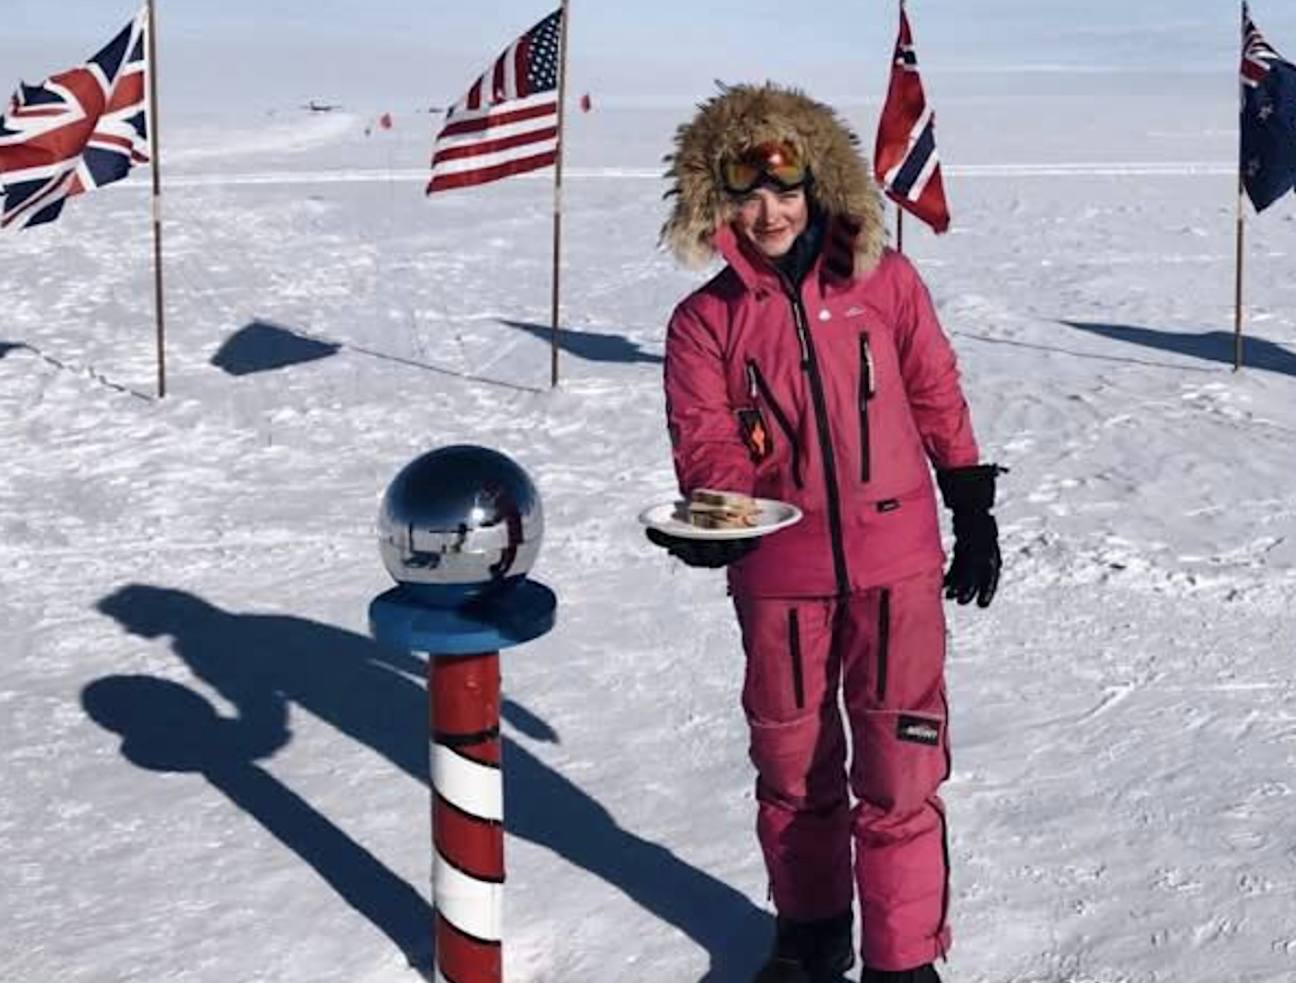 At 16 Explorer Jade Hameister Is The Youngest Person To Ever Complete The Polar Hat Trick By Reaching The North An South Pole How To Make Sandwich 16 Year Old